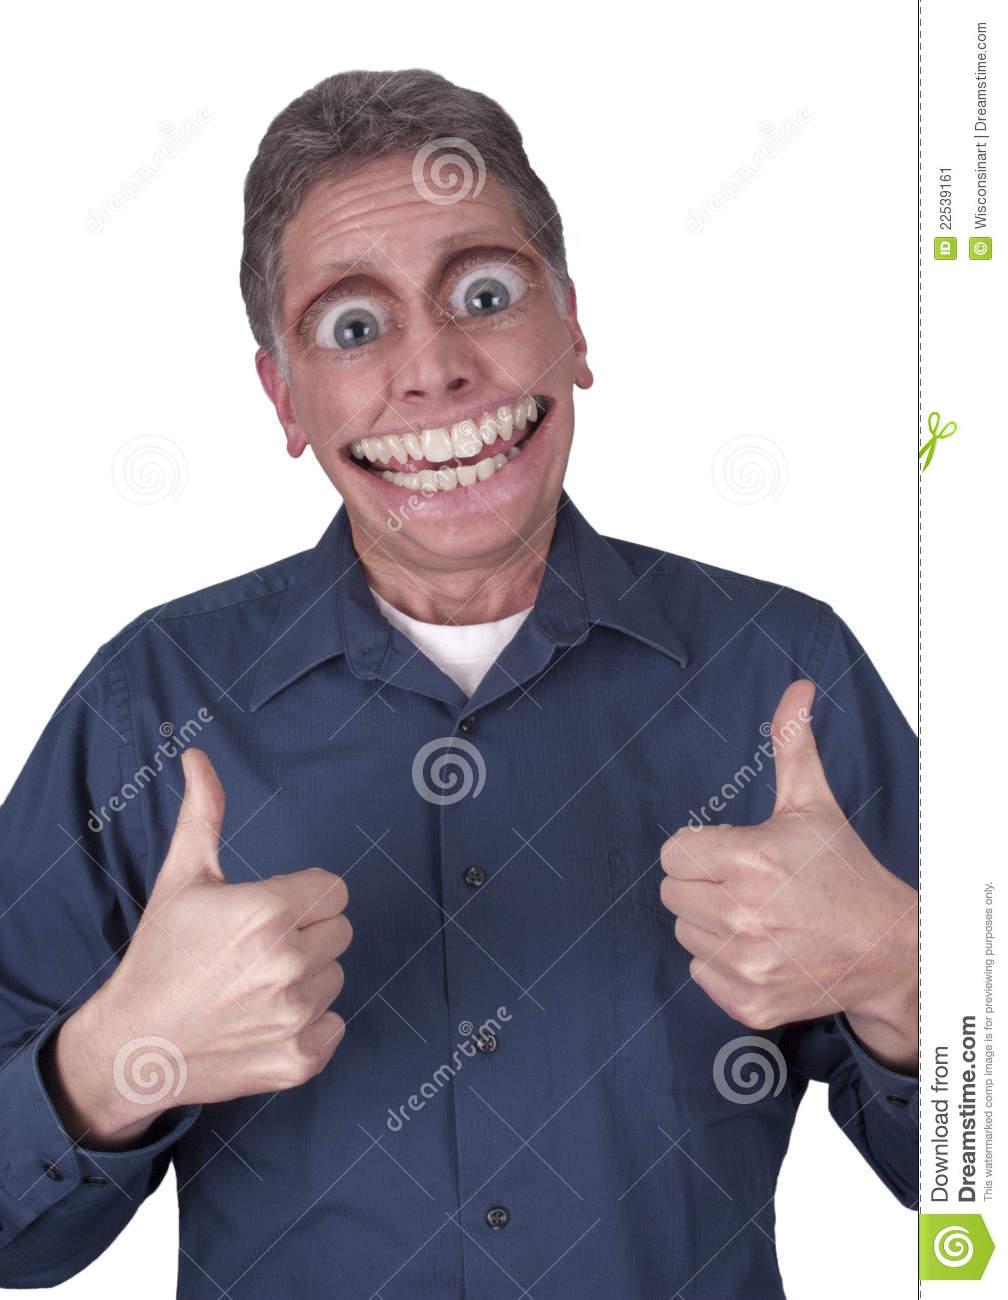 Funny Guy With Big Eyes : funny, Funny, Happy, Smile, Stock, Image, Happy,, Male:, 22539161